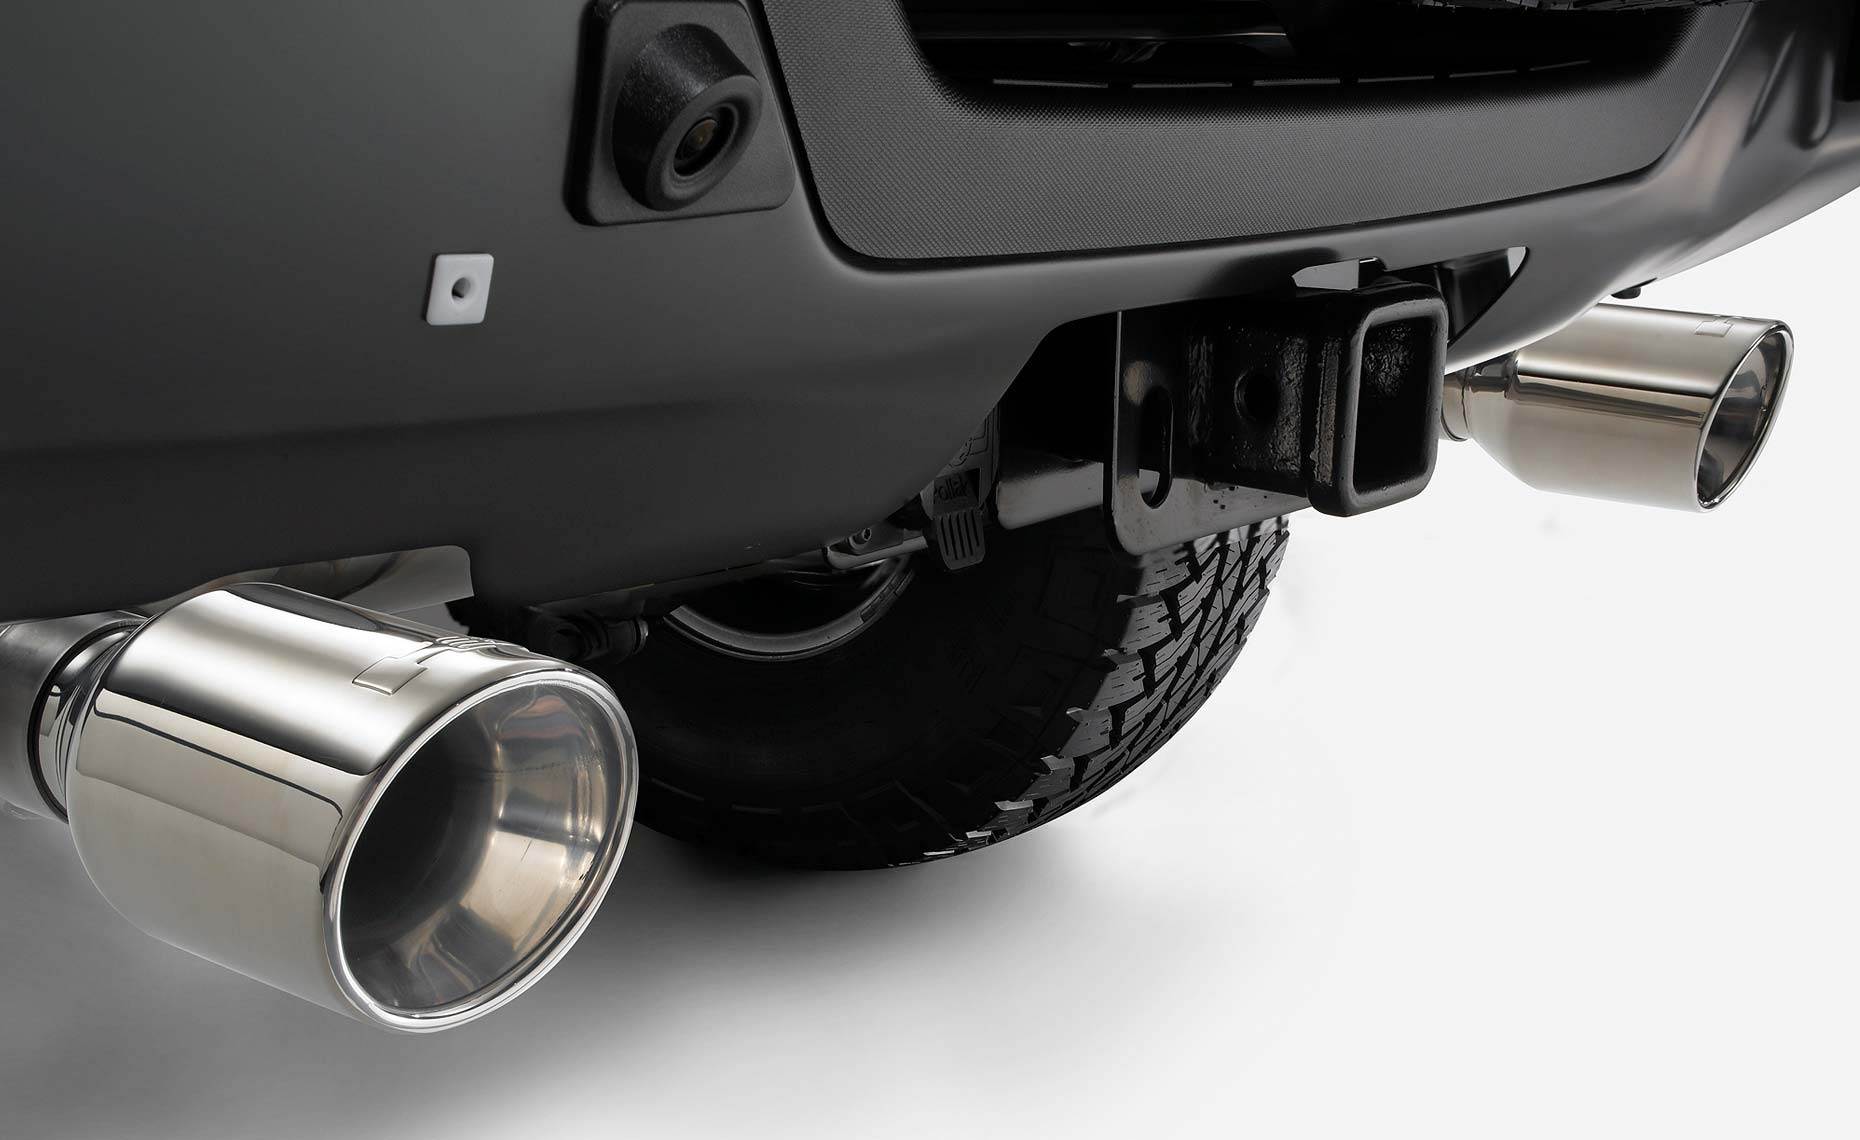 H3 hummer-chrome tailpipes.jpg